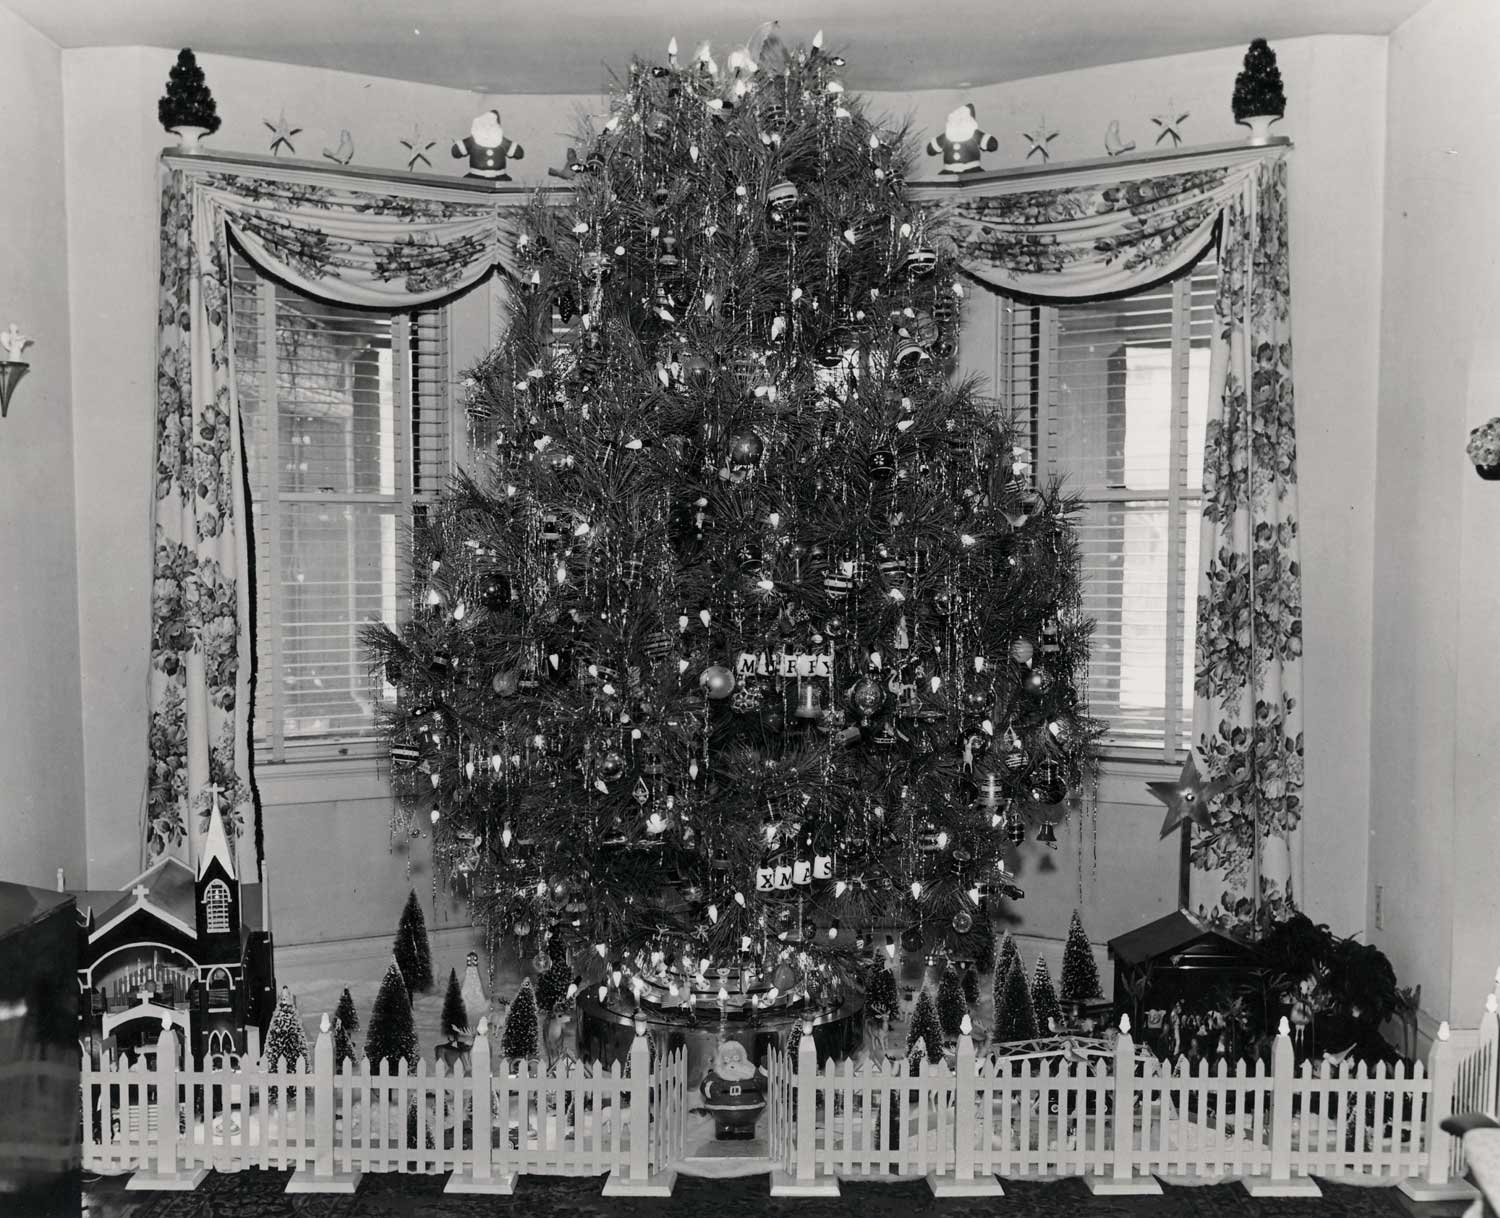 Vintage Christmas Photographs From The 1930s